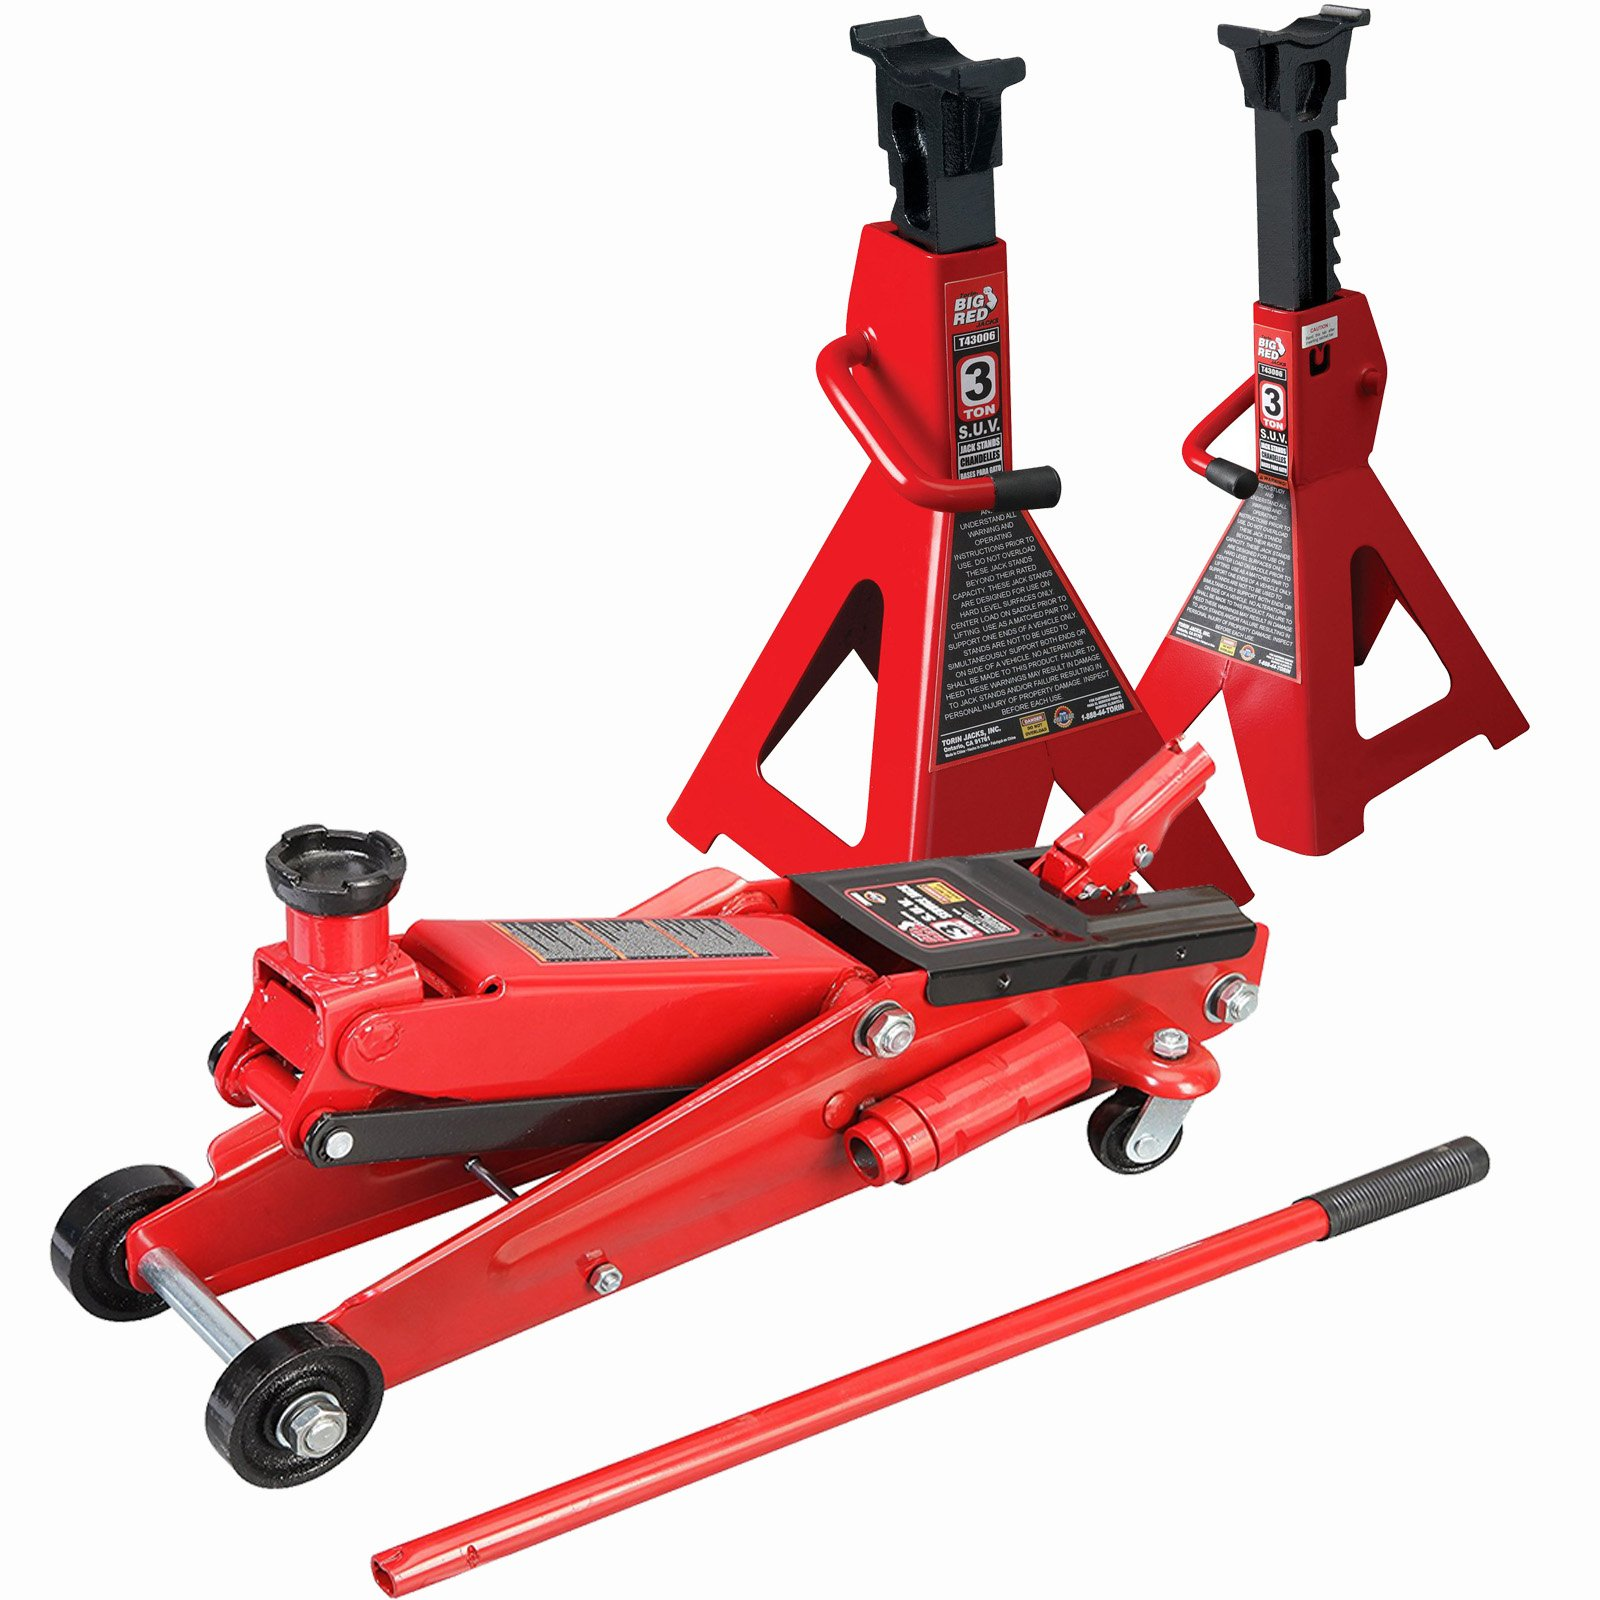 SUV 3 Ton Floor Jack With 3 Ton Jack Stands Heavy Duty Set Large SUV Truck Lift Torin Brand by Torin